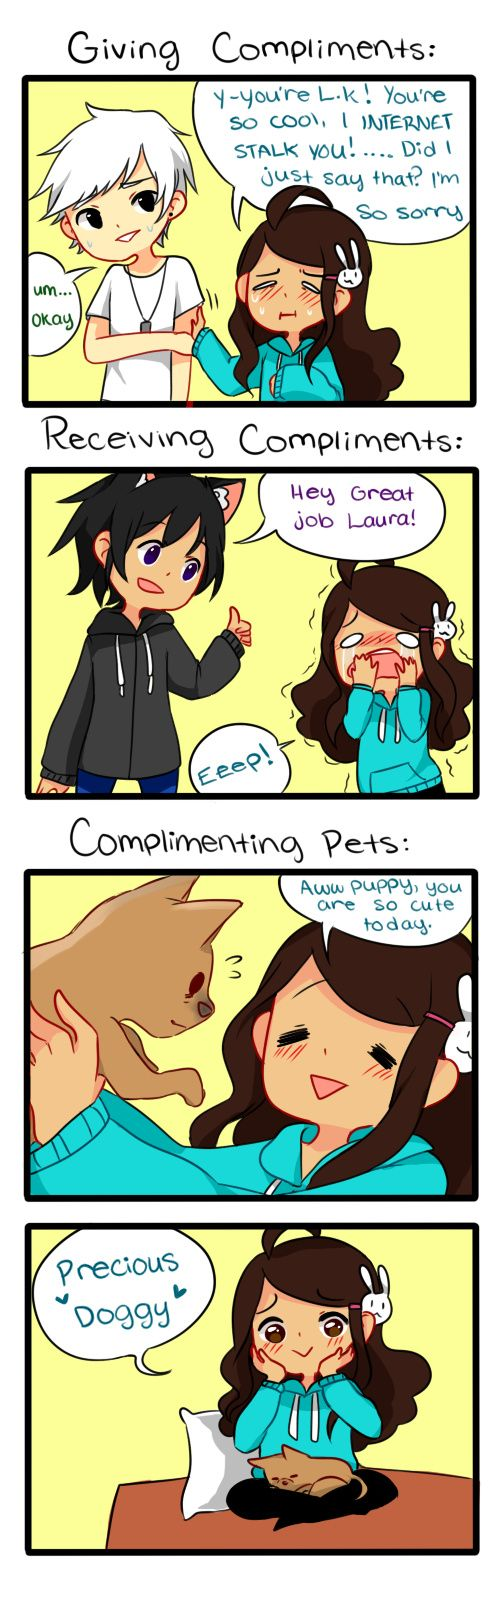 """Check out the comic """"Anti-Social Media :: 5: Compliments"""" http://tapastic.com/episode/101714"""